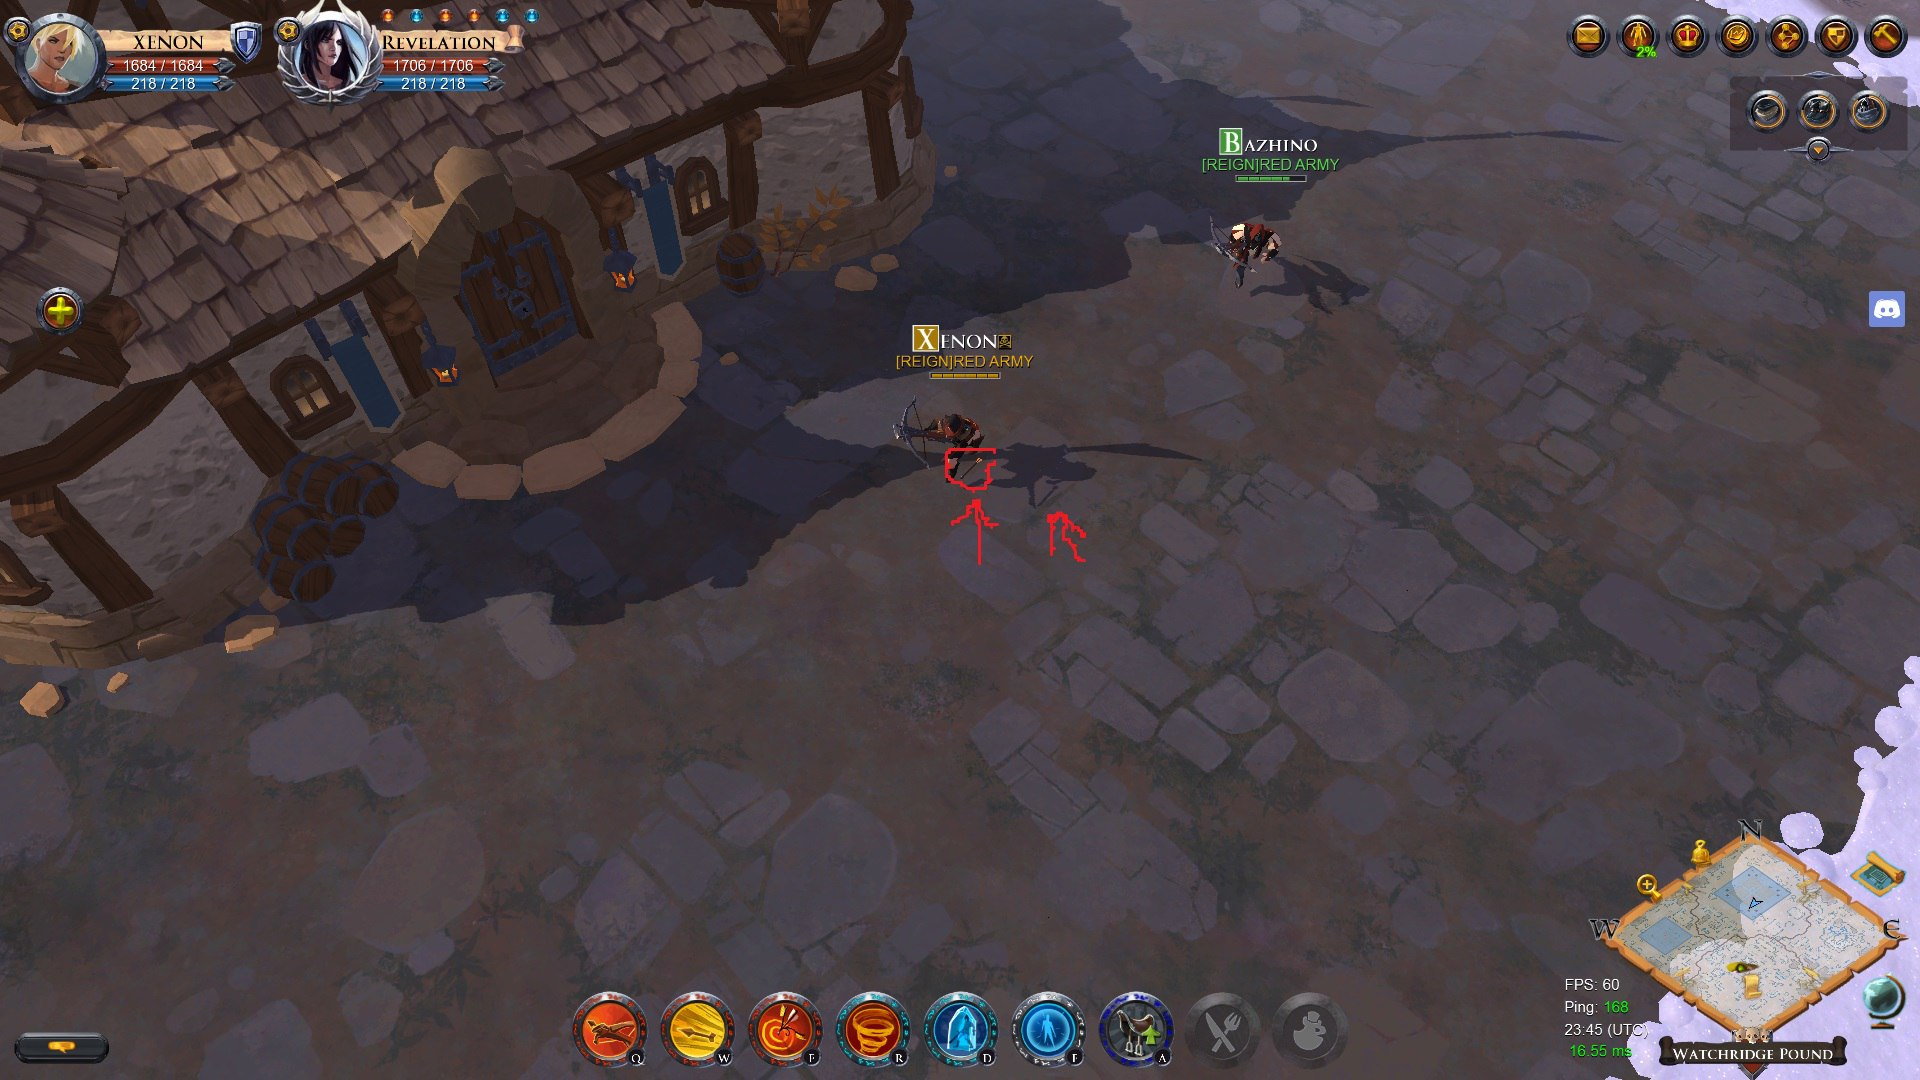 Crossbow and bolt - Bugs - Albion Online Forum